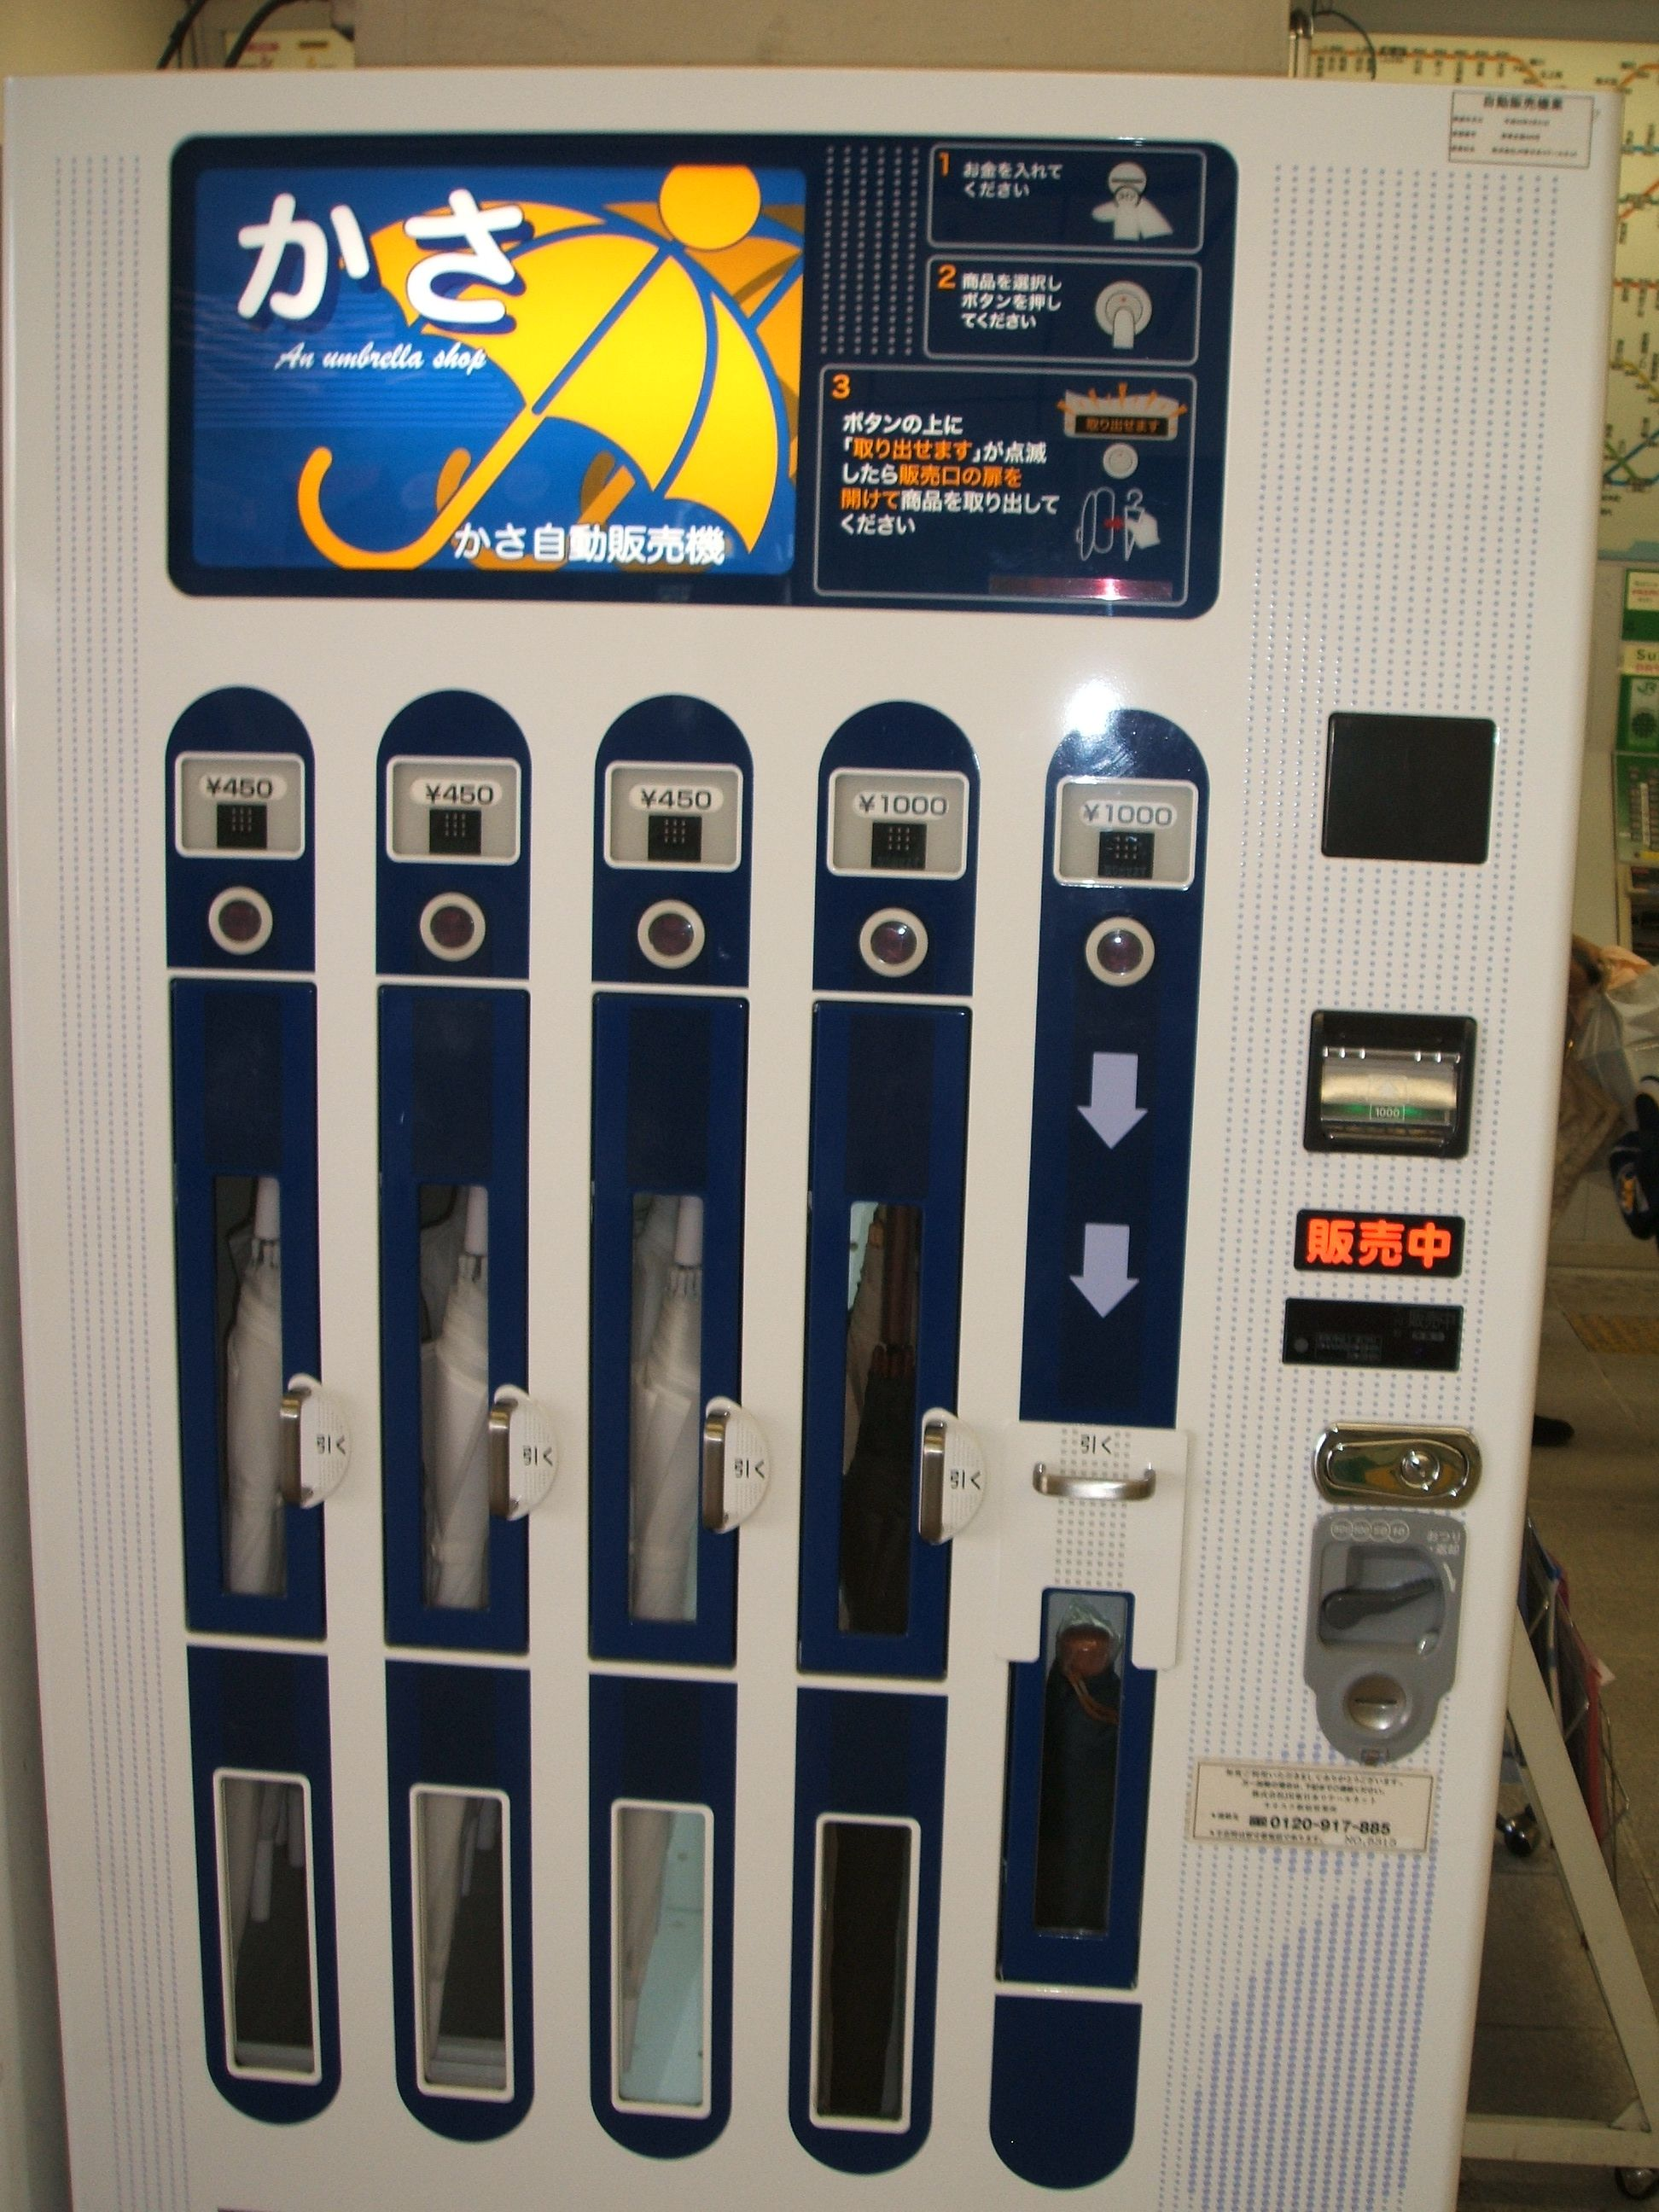 van hoa nhat ban - vending machine umbrella - elle viet nam